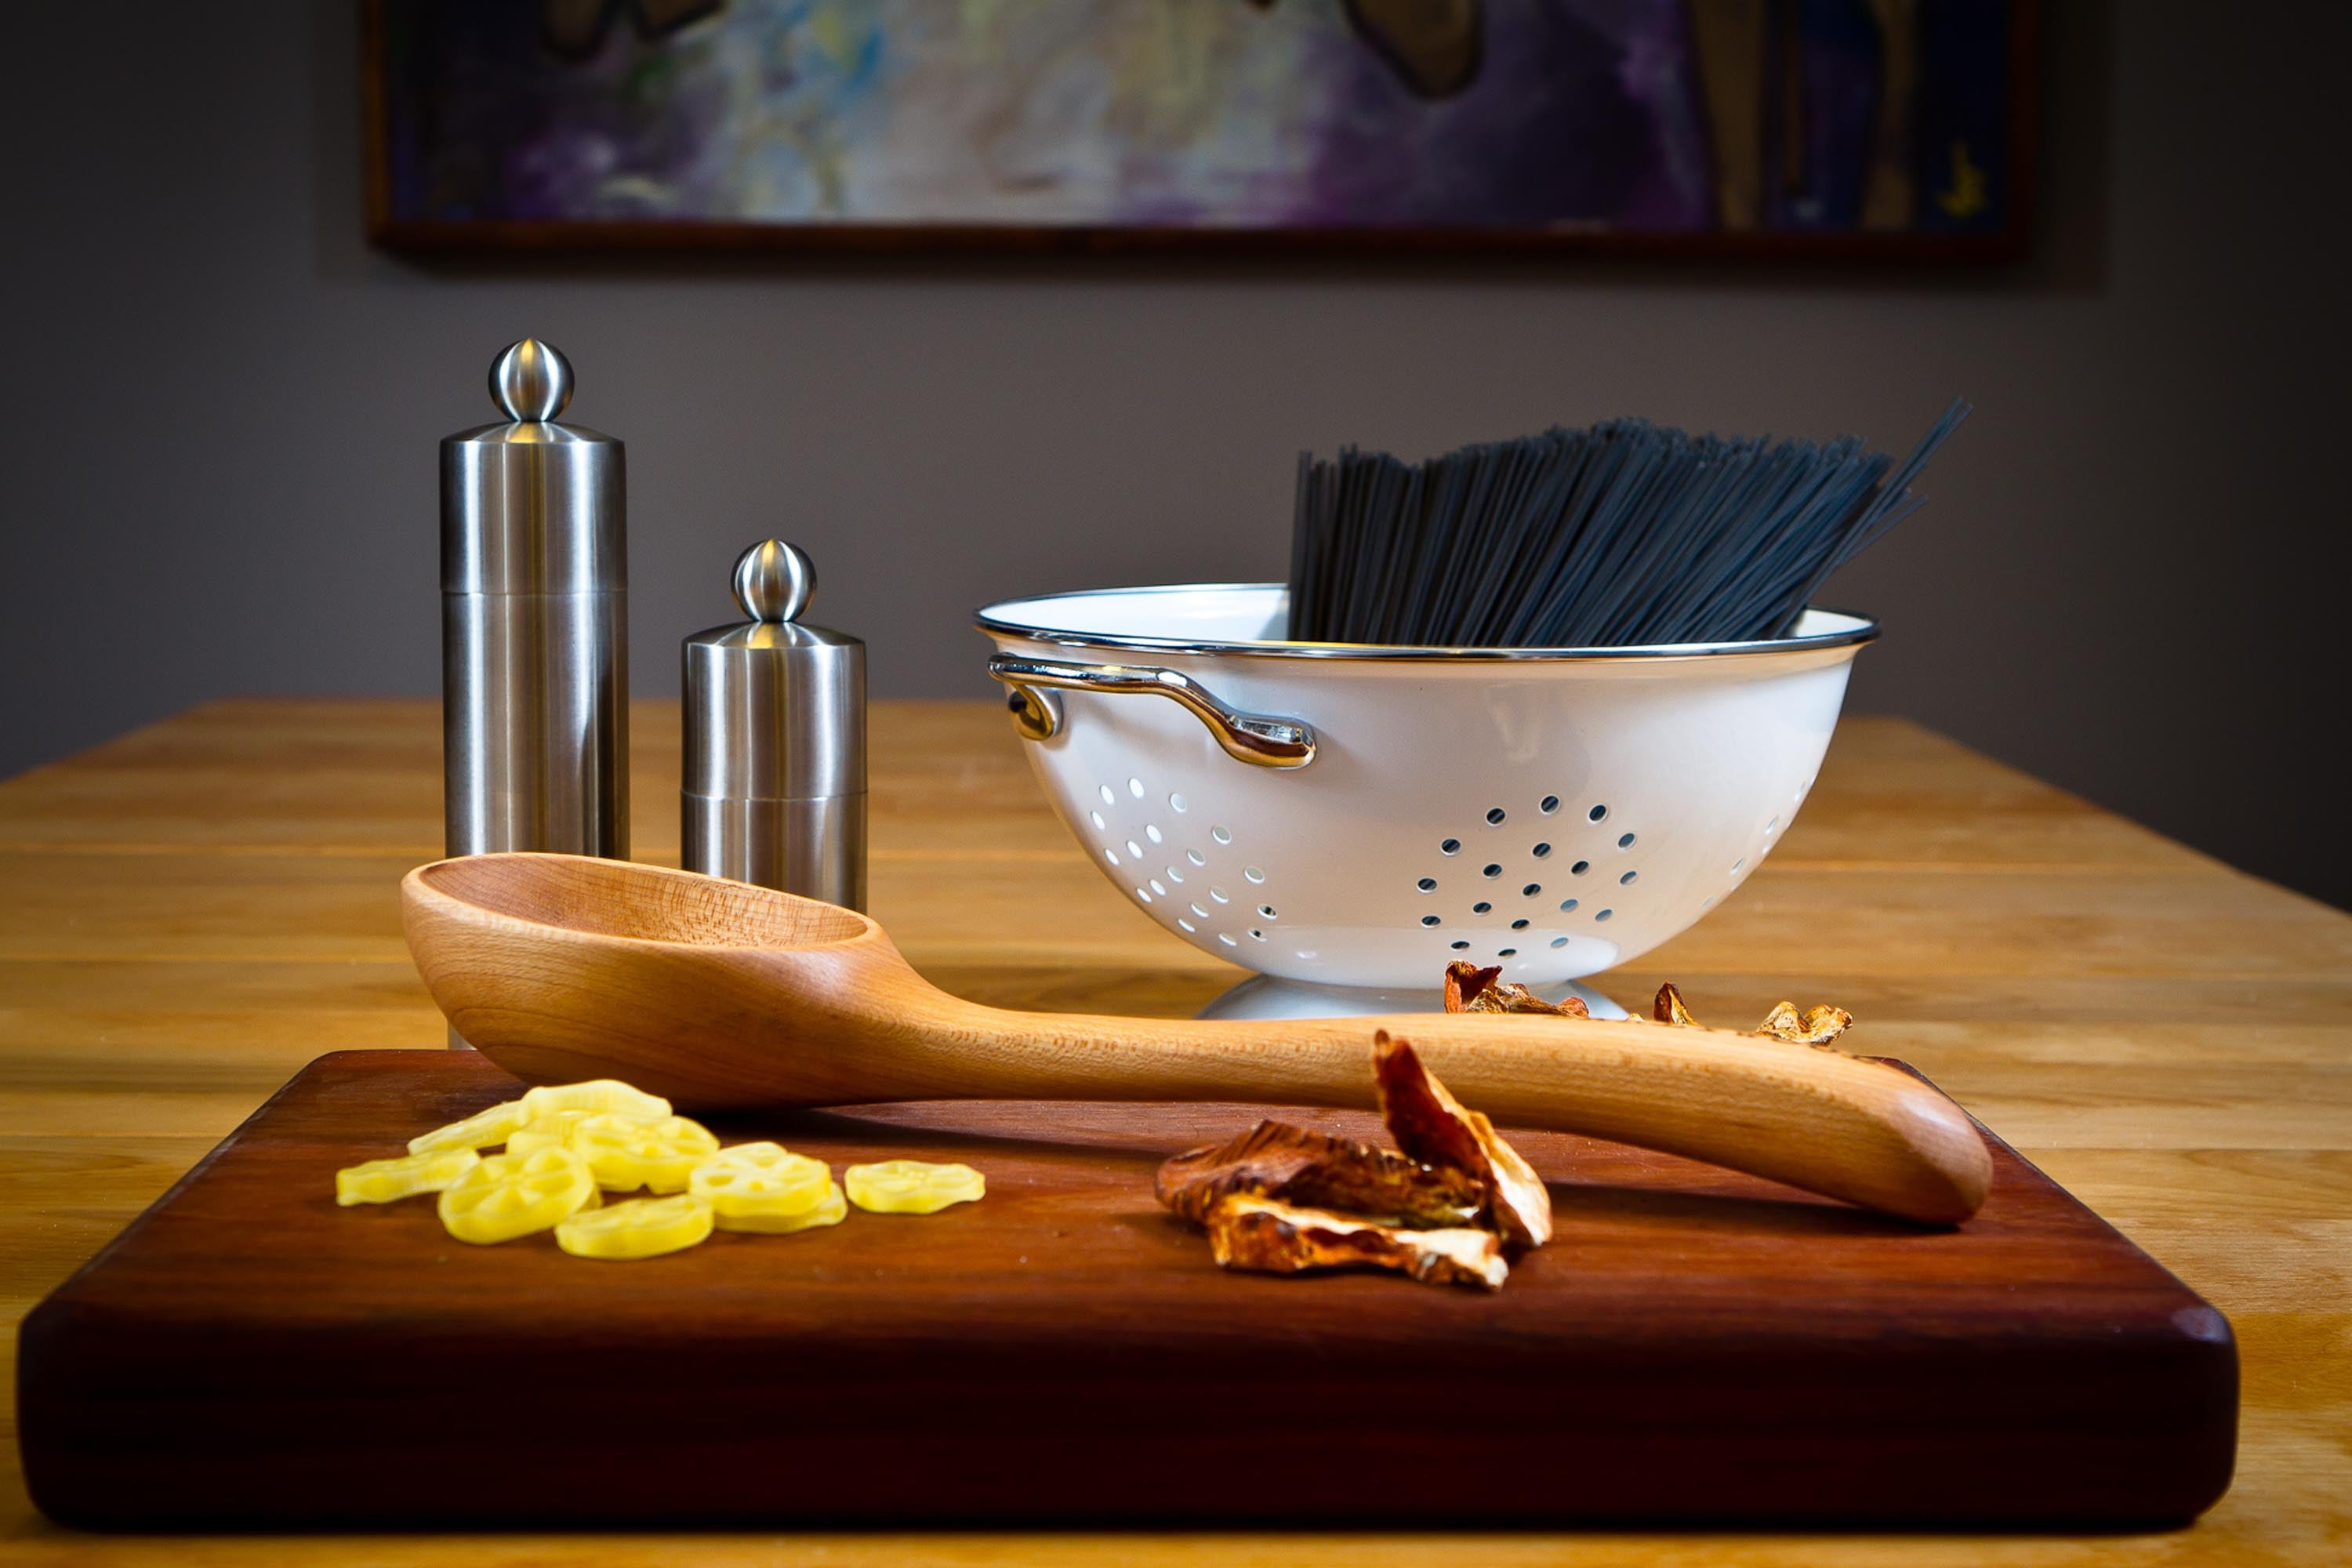 Wooden ladle and cutting board